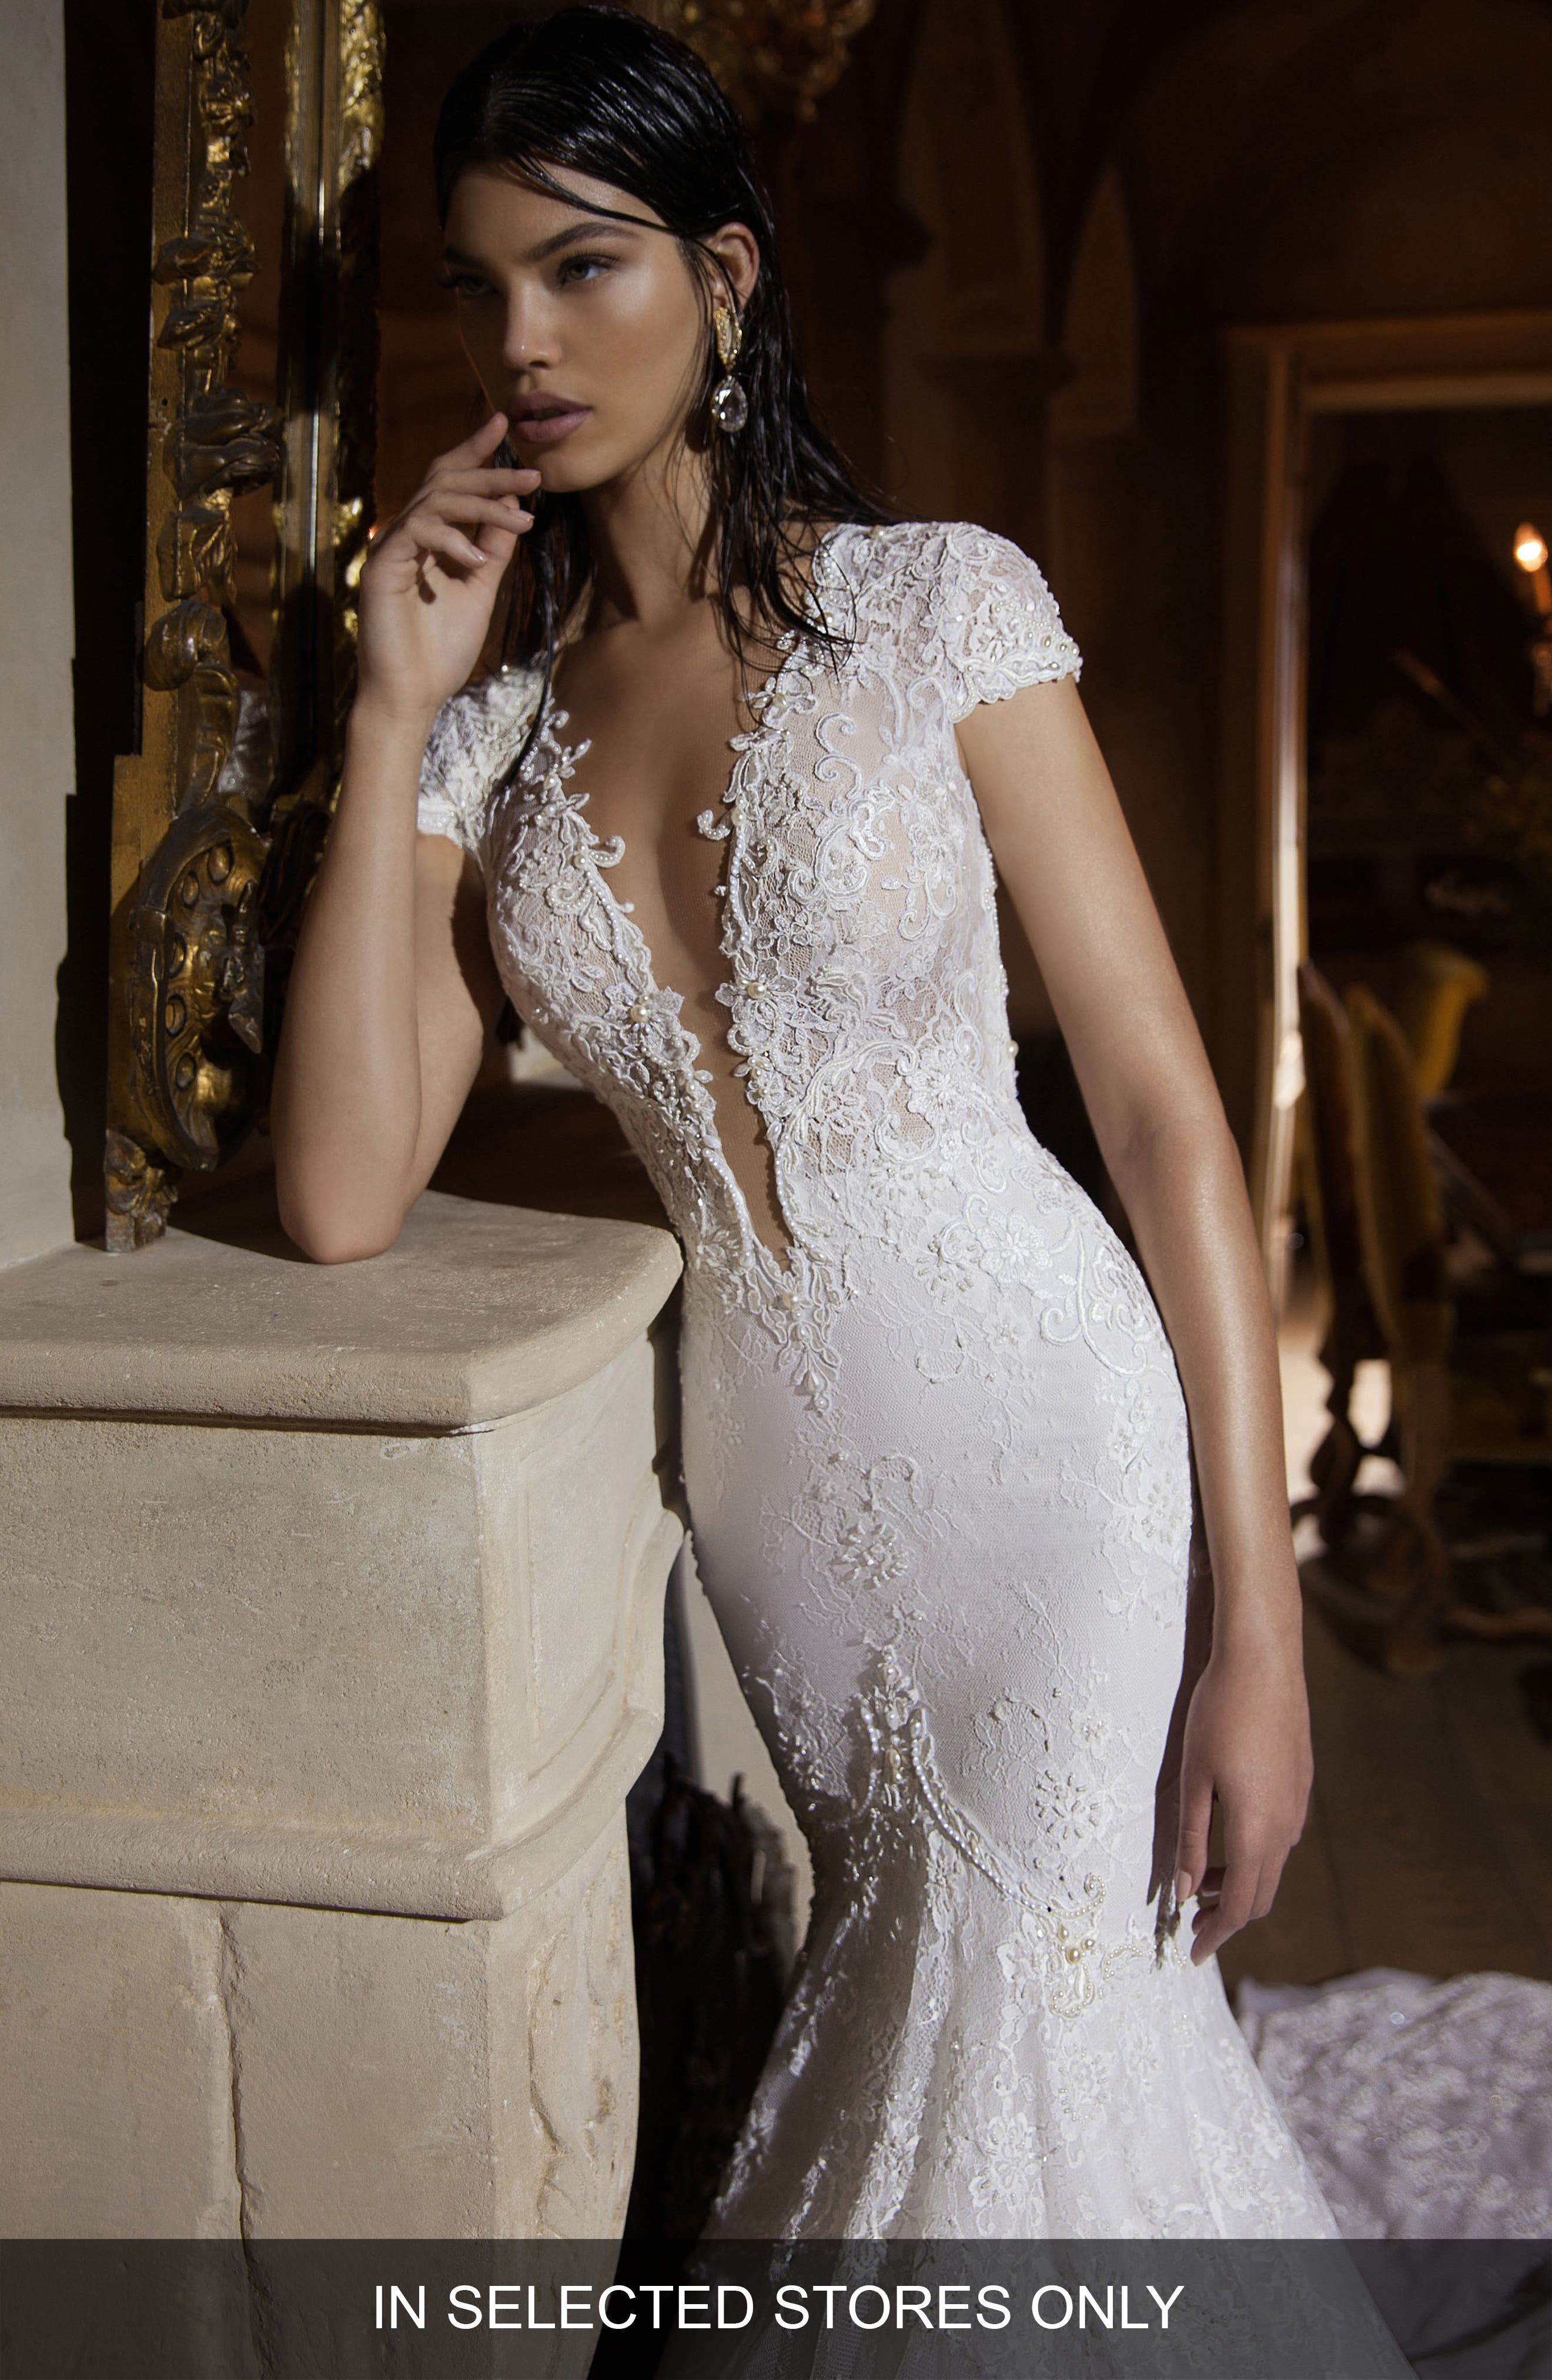 Plunging V-Neck Cap Sleeve Lace Mermaid Gown,                             Alternate thumbnail 2, color,                             100